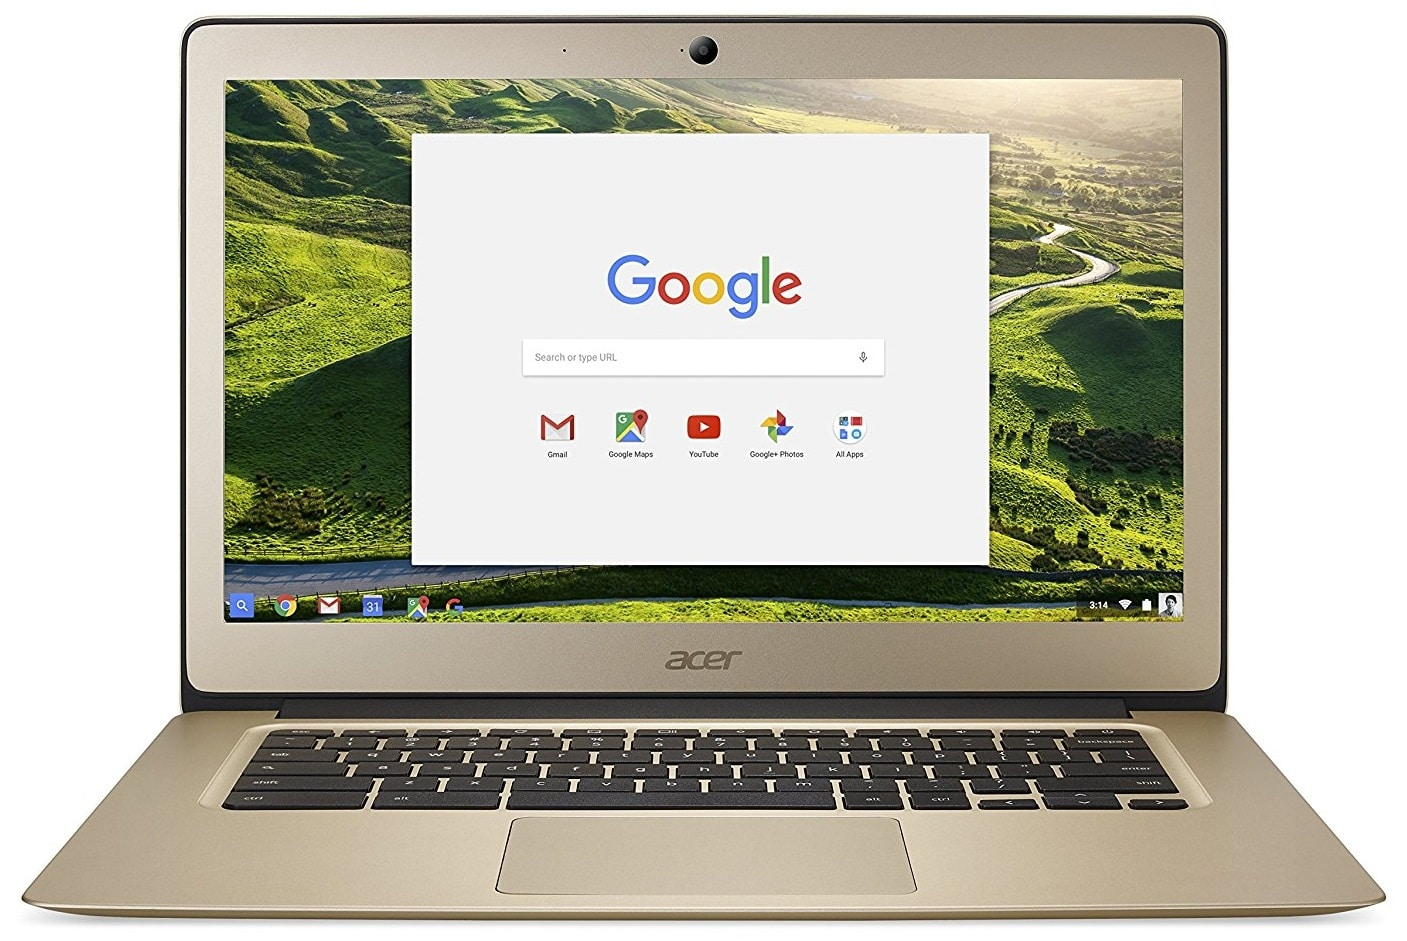 Acer Chromebook 14 best laptop under 300 pounds uk